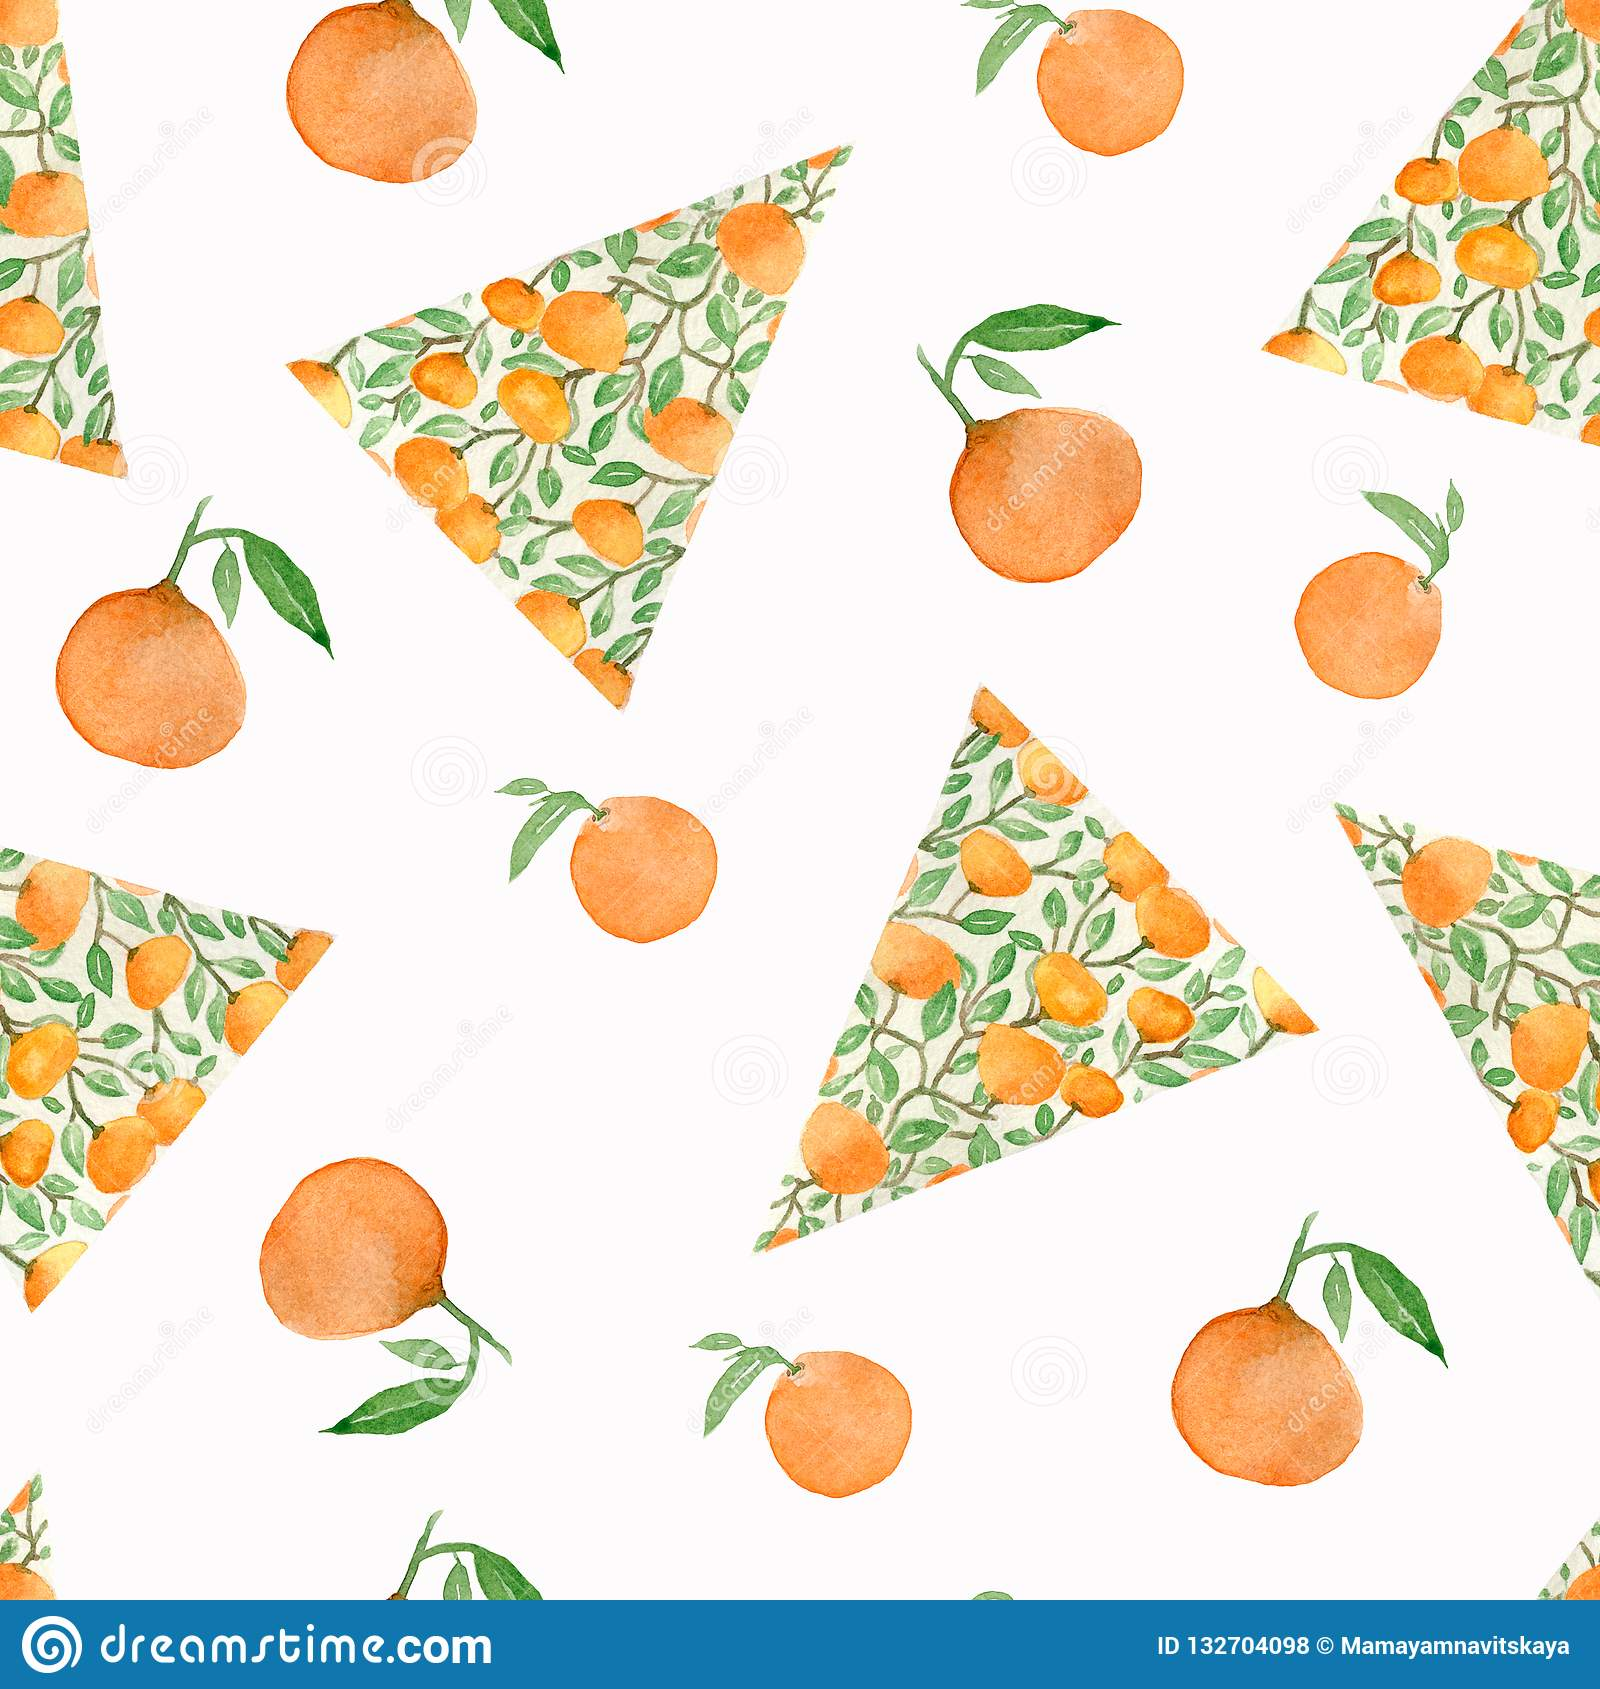 Christmas tree with oranges. Sketch for greeting card, festive poster, party invitations,textile, fabric, wrapping, menu.